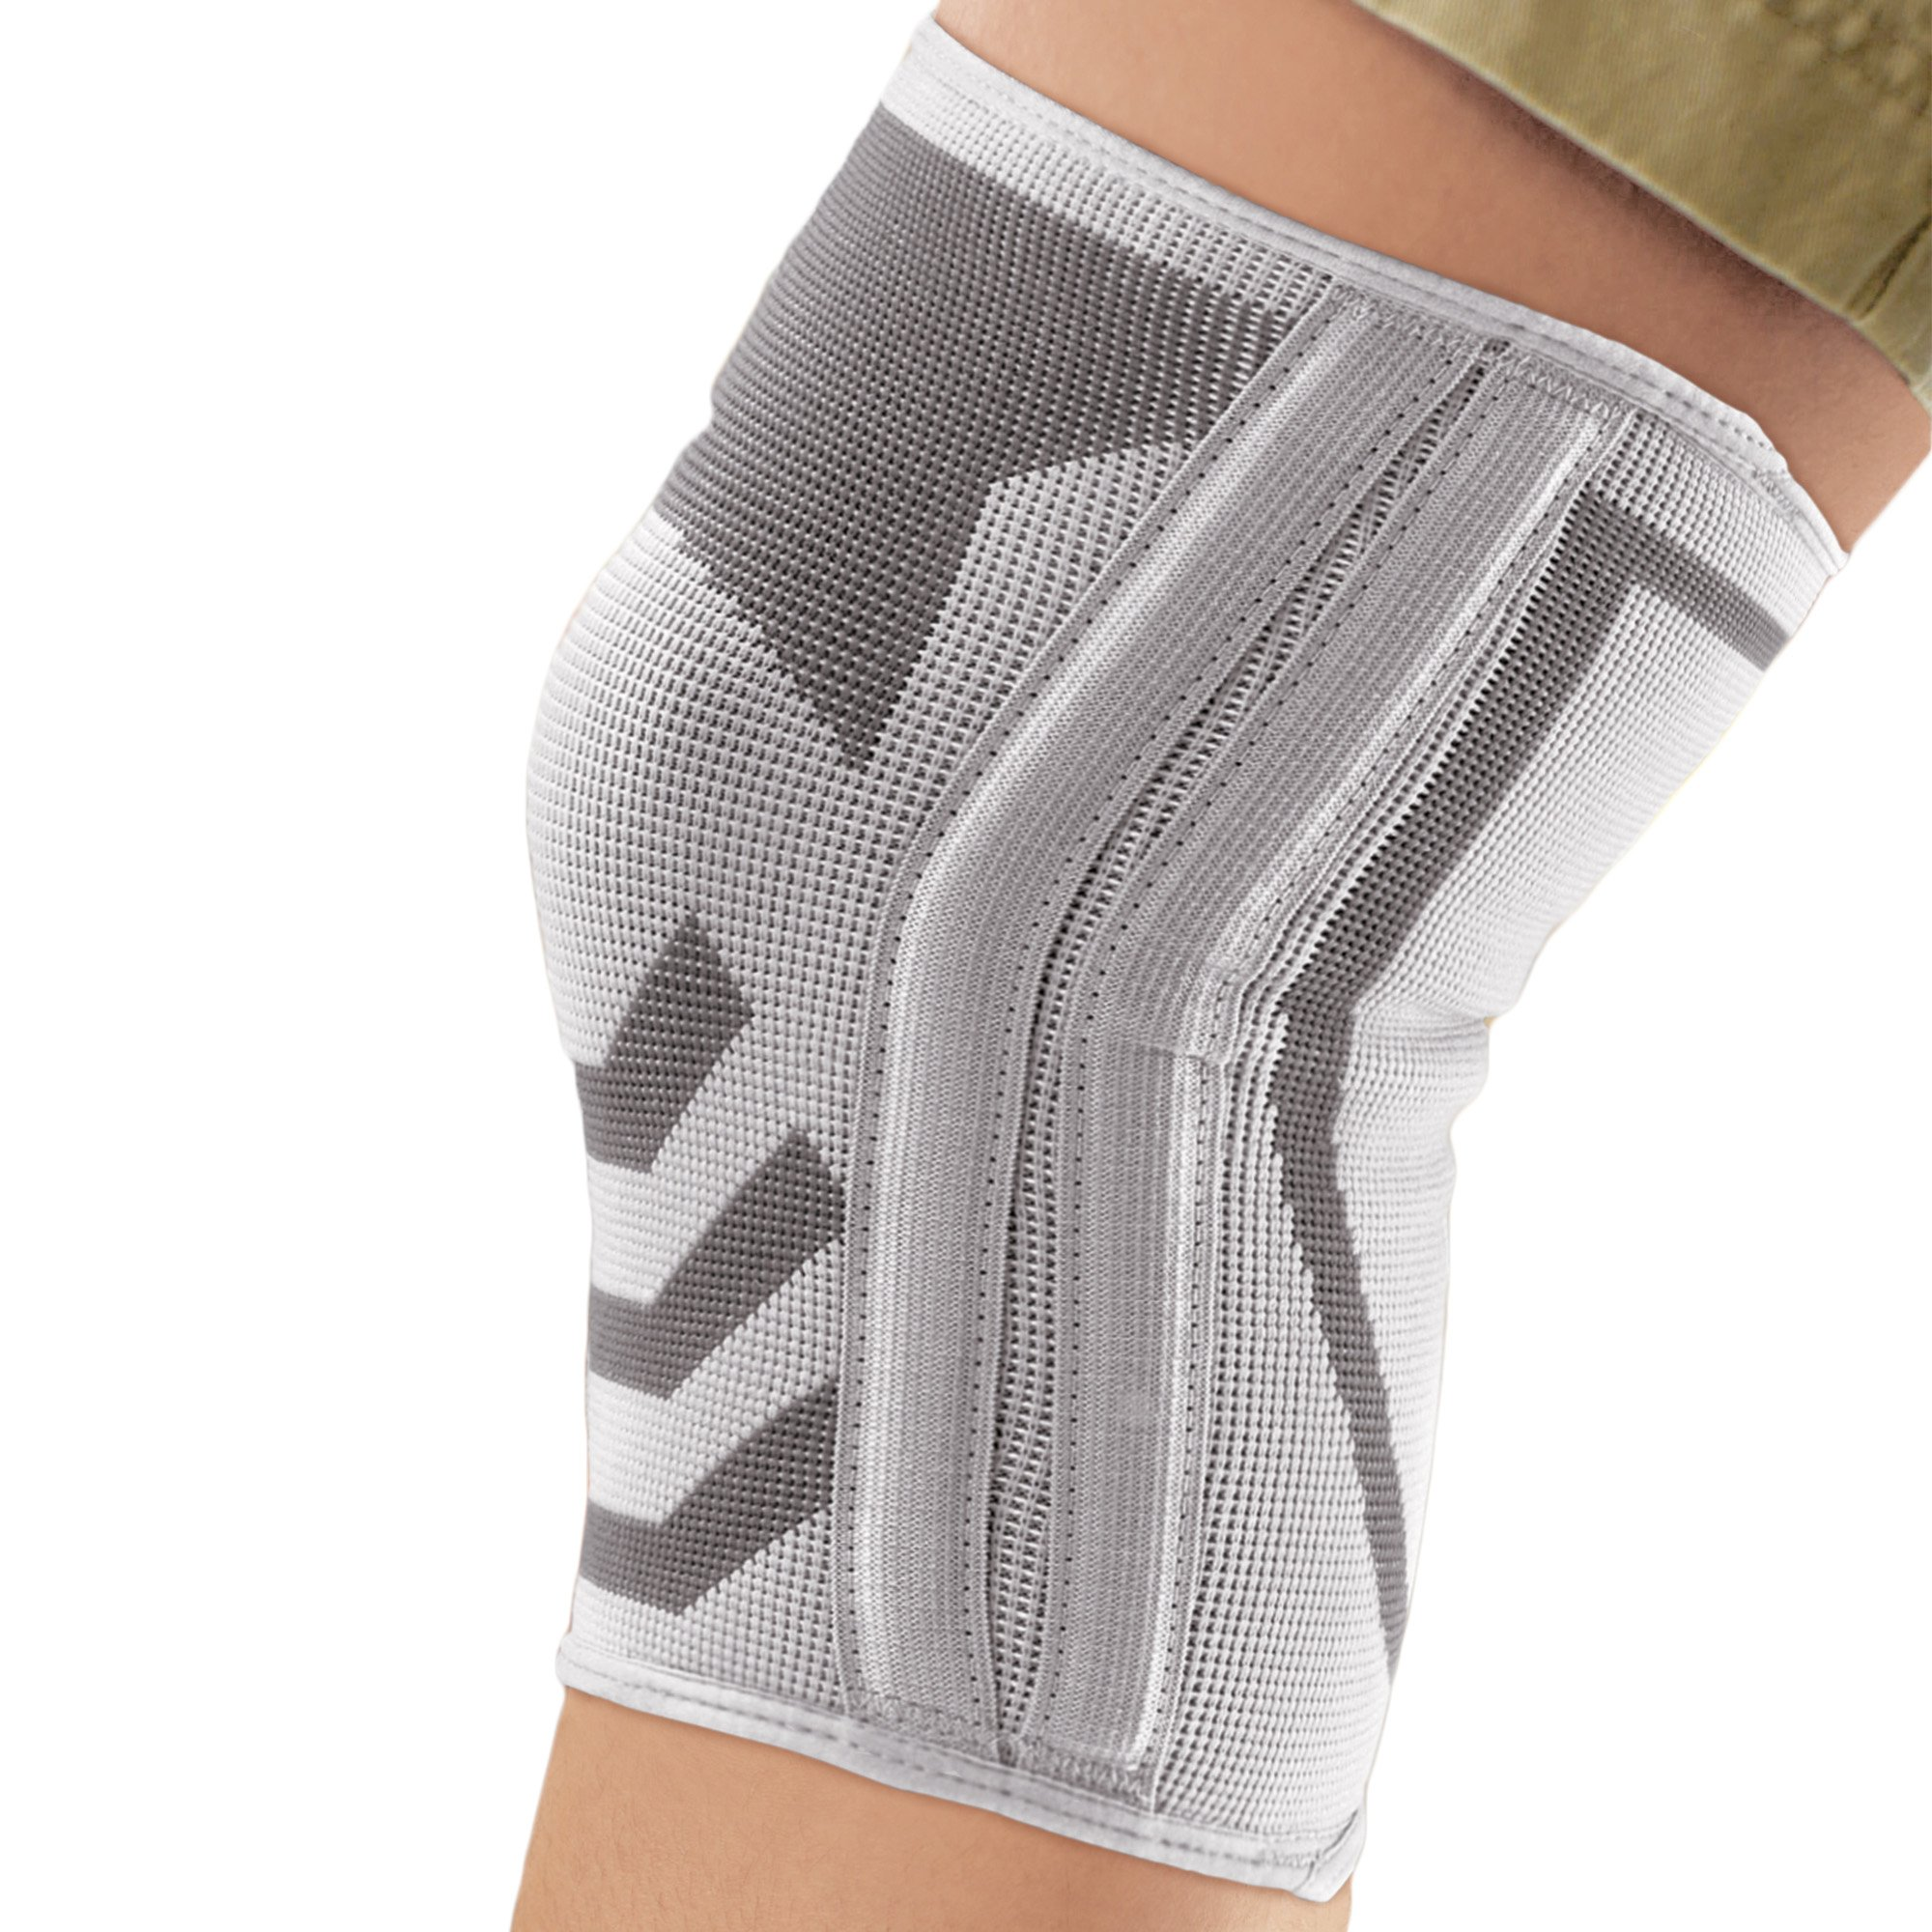 Amazon Com Ace Knee Brace With Dual Side Stabilizers